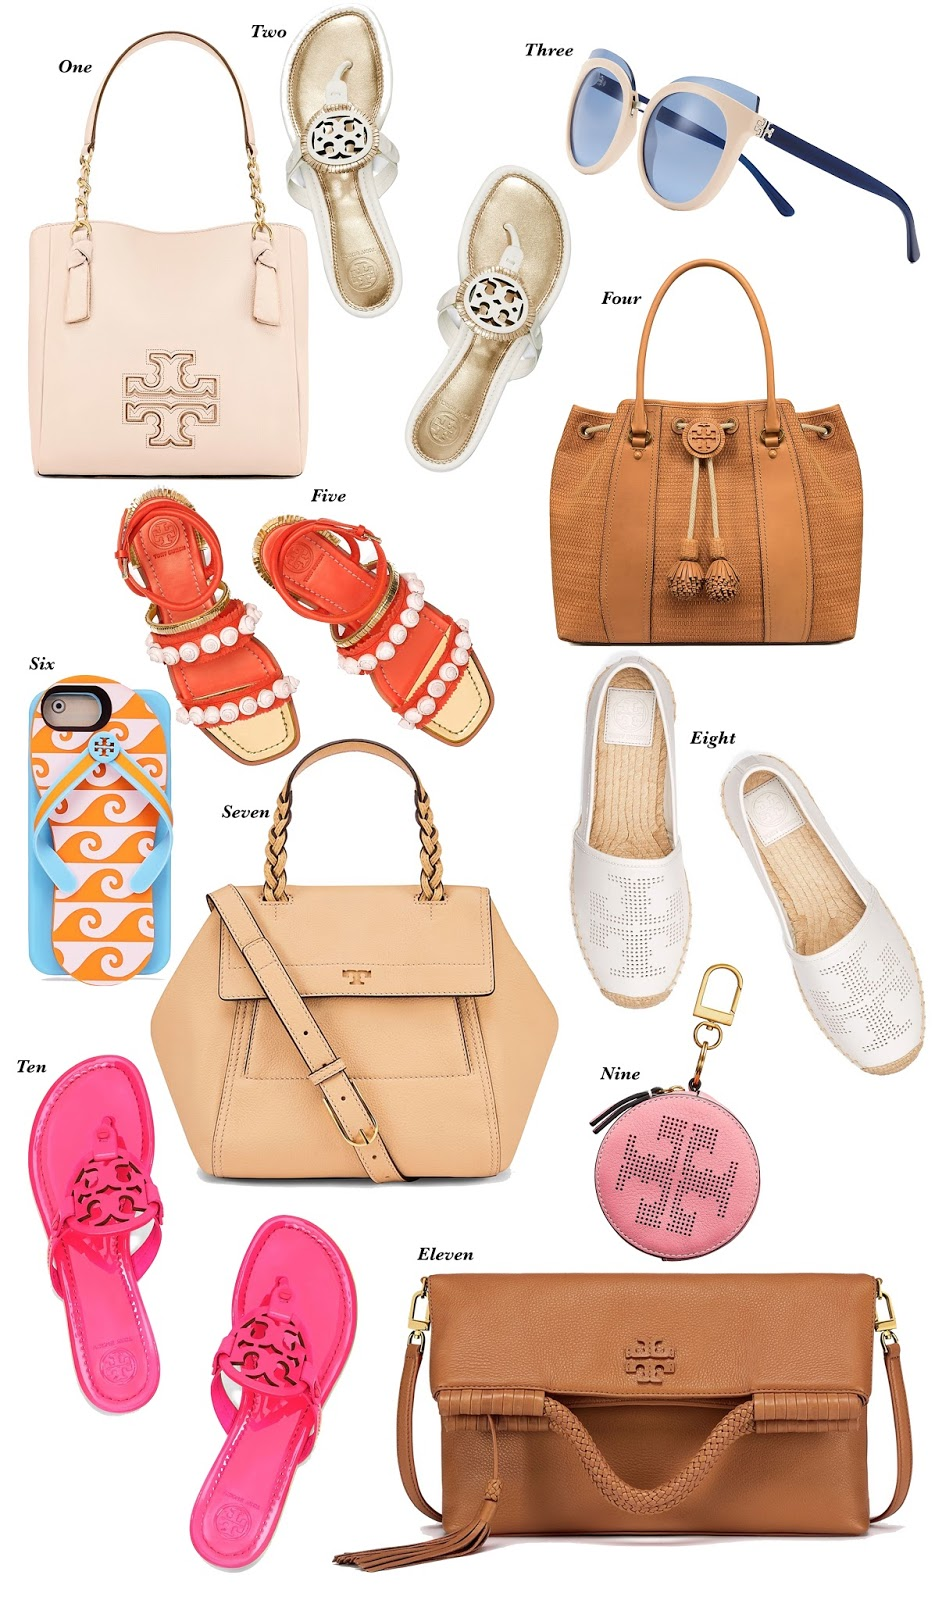 Tory Burch Spring Favorites - Something Delightful